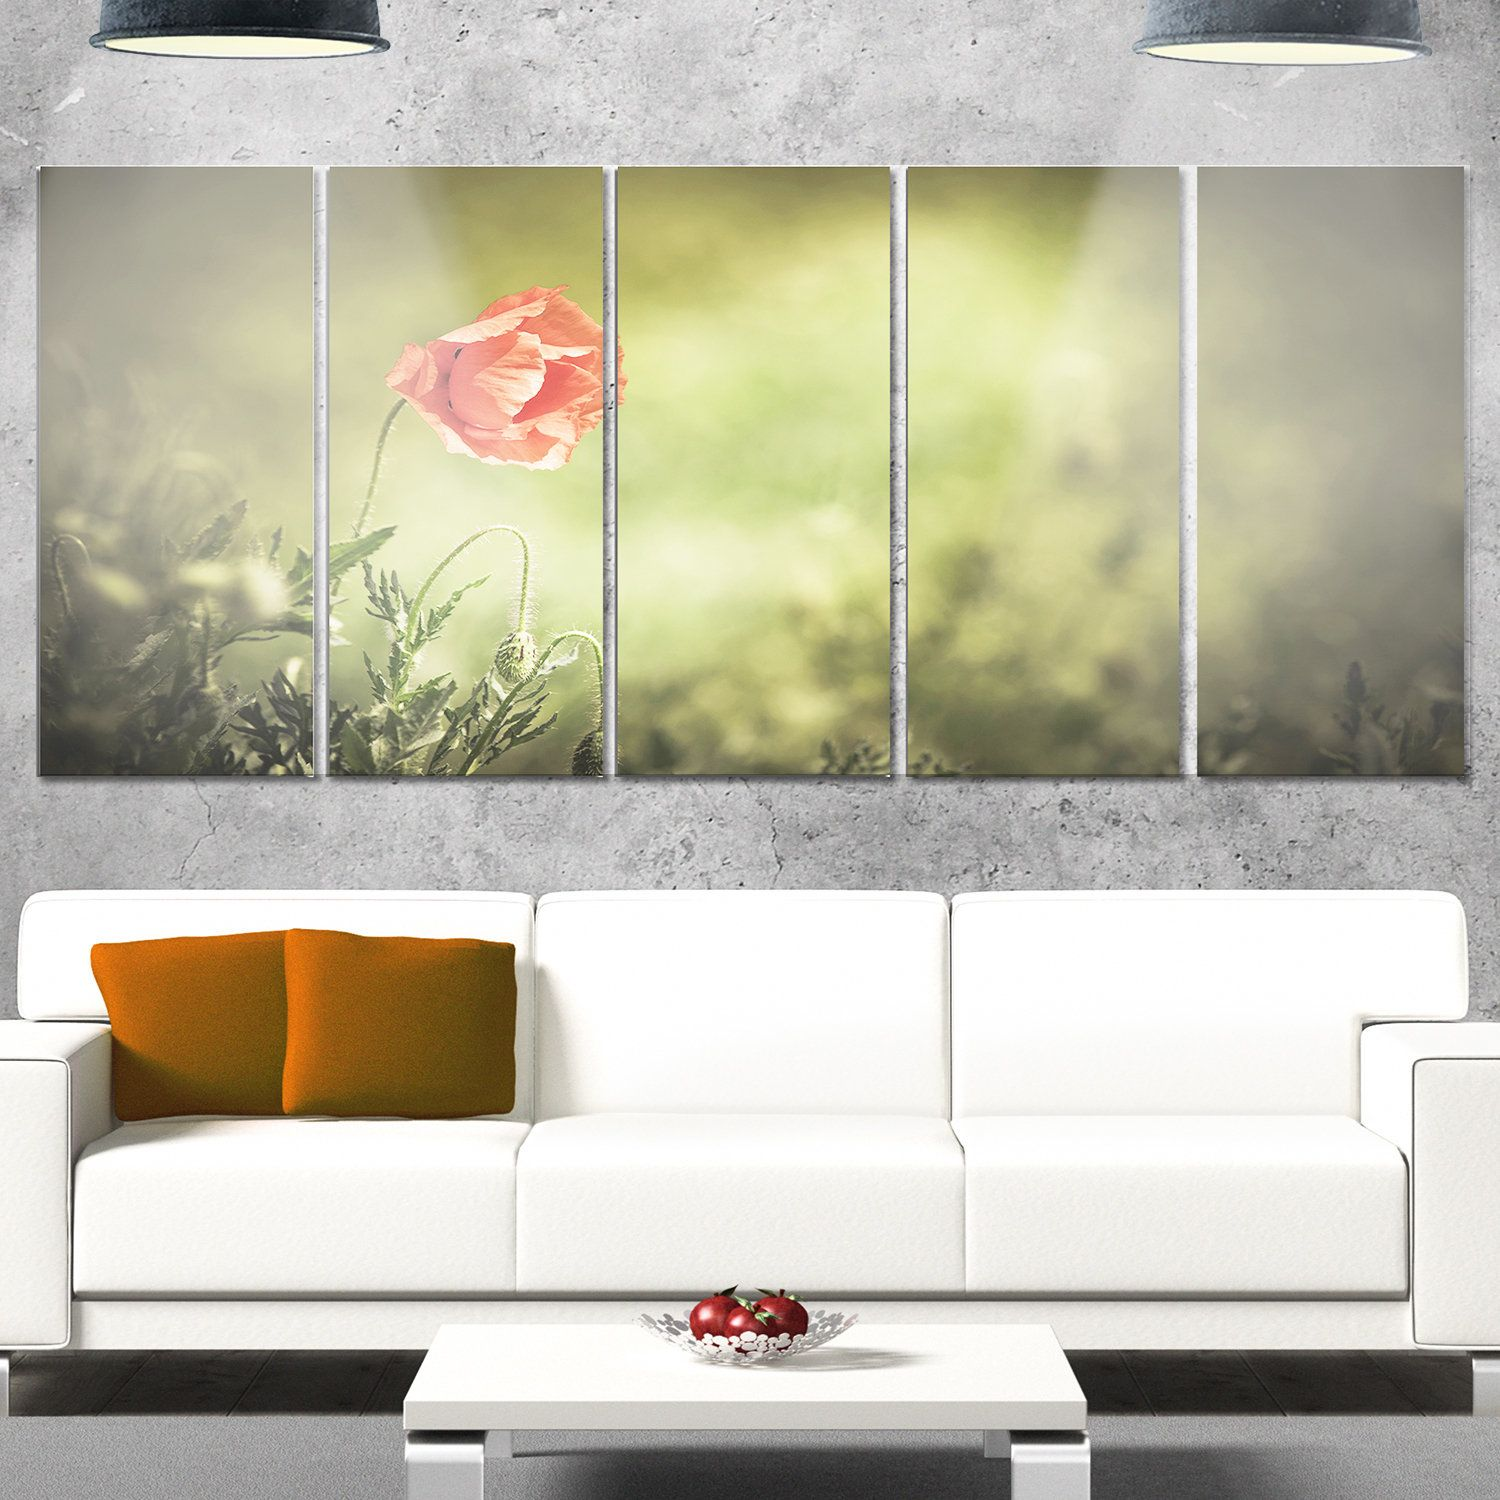 Luxury Metal Wall Flower Art Pictures - All About Wallart ...